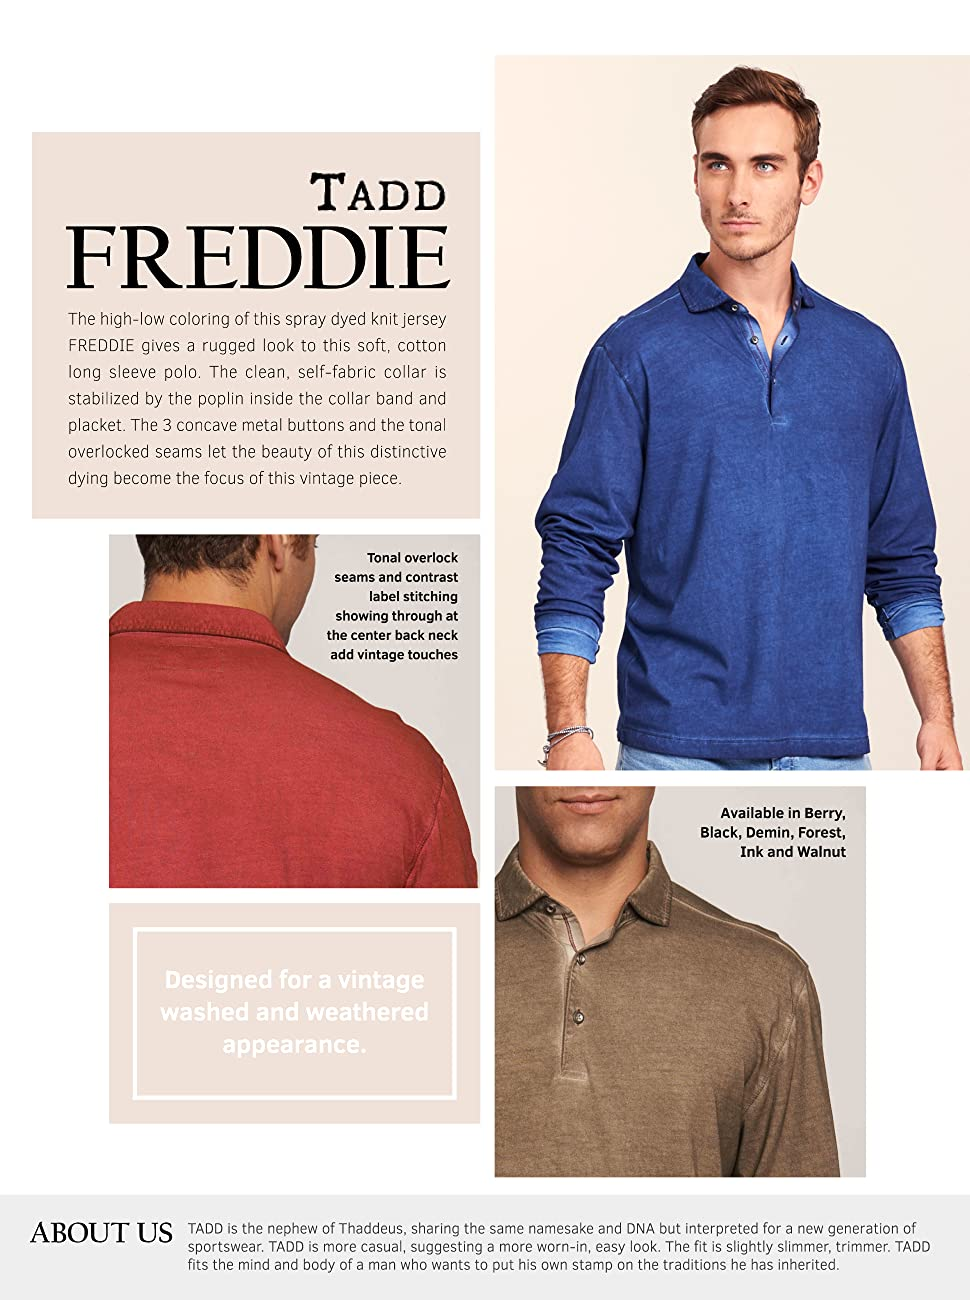 94eb467497 TADD by Thadddeus Mens Freddy Long Sleeve Cotton Collared Polo Shirt ...